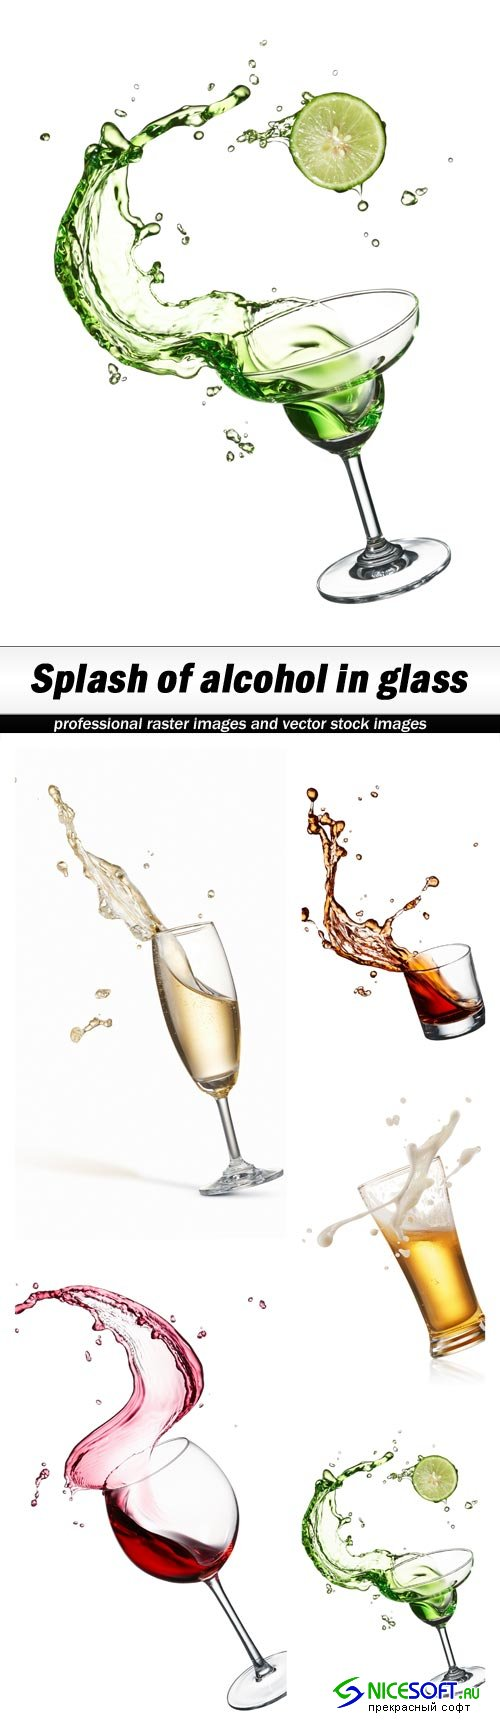 Splash of alcohol in glass - 5 UHQ JPEG